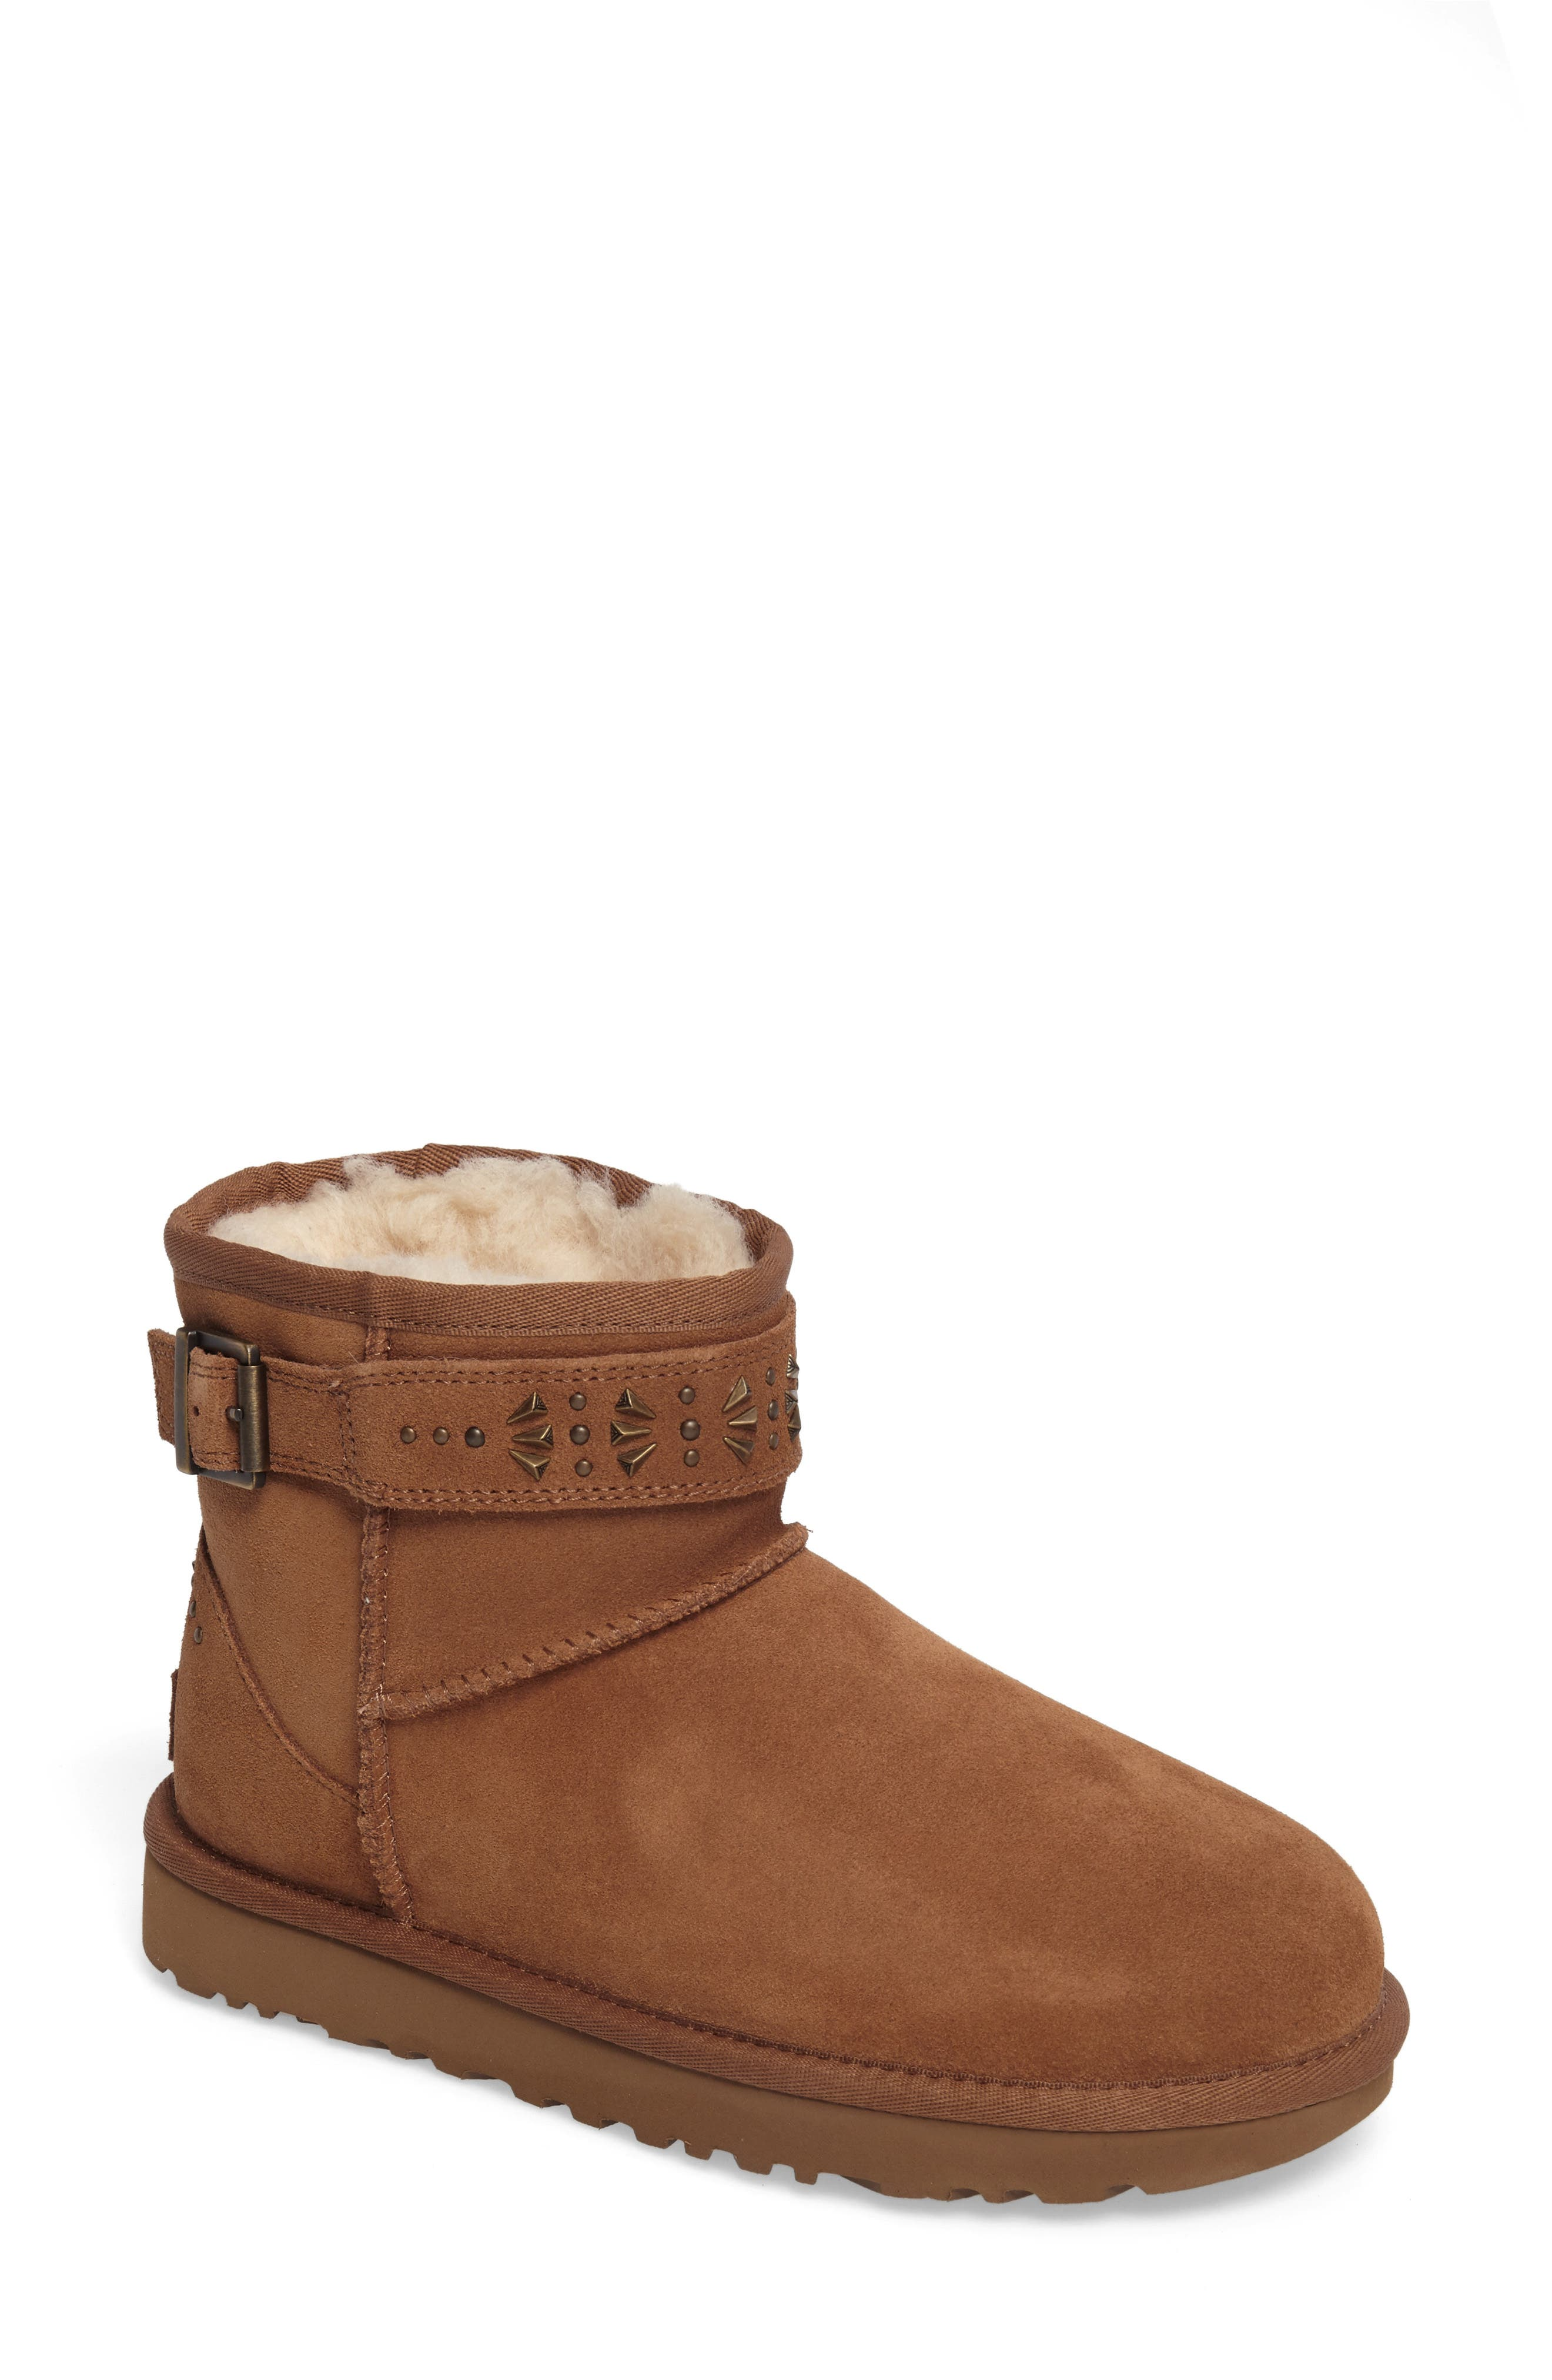 Jadine Boot,                             Main thumbnail 1, color,                             Chestnut Suede